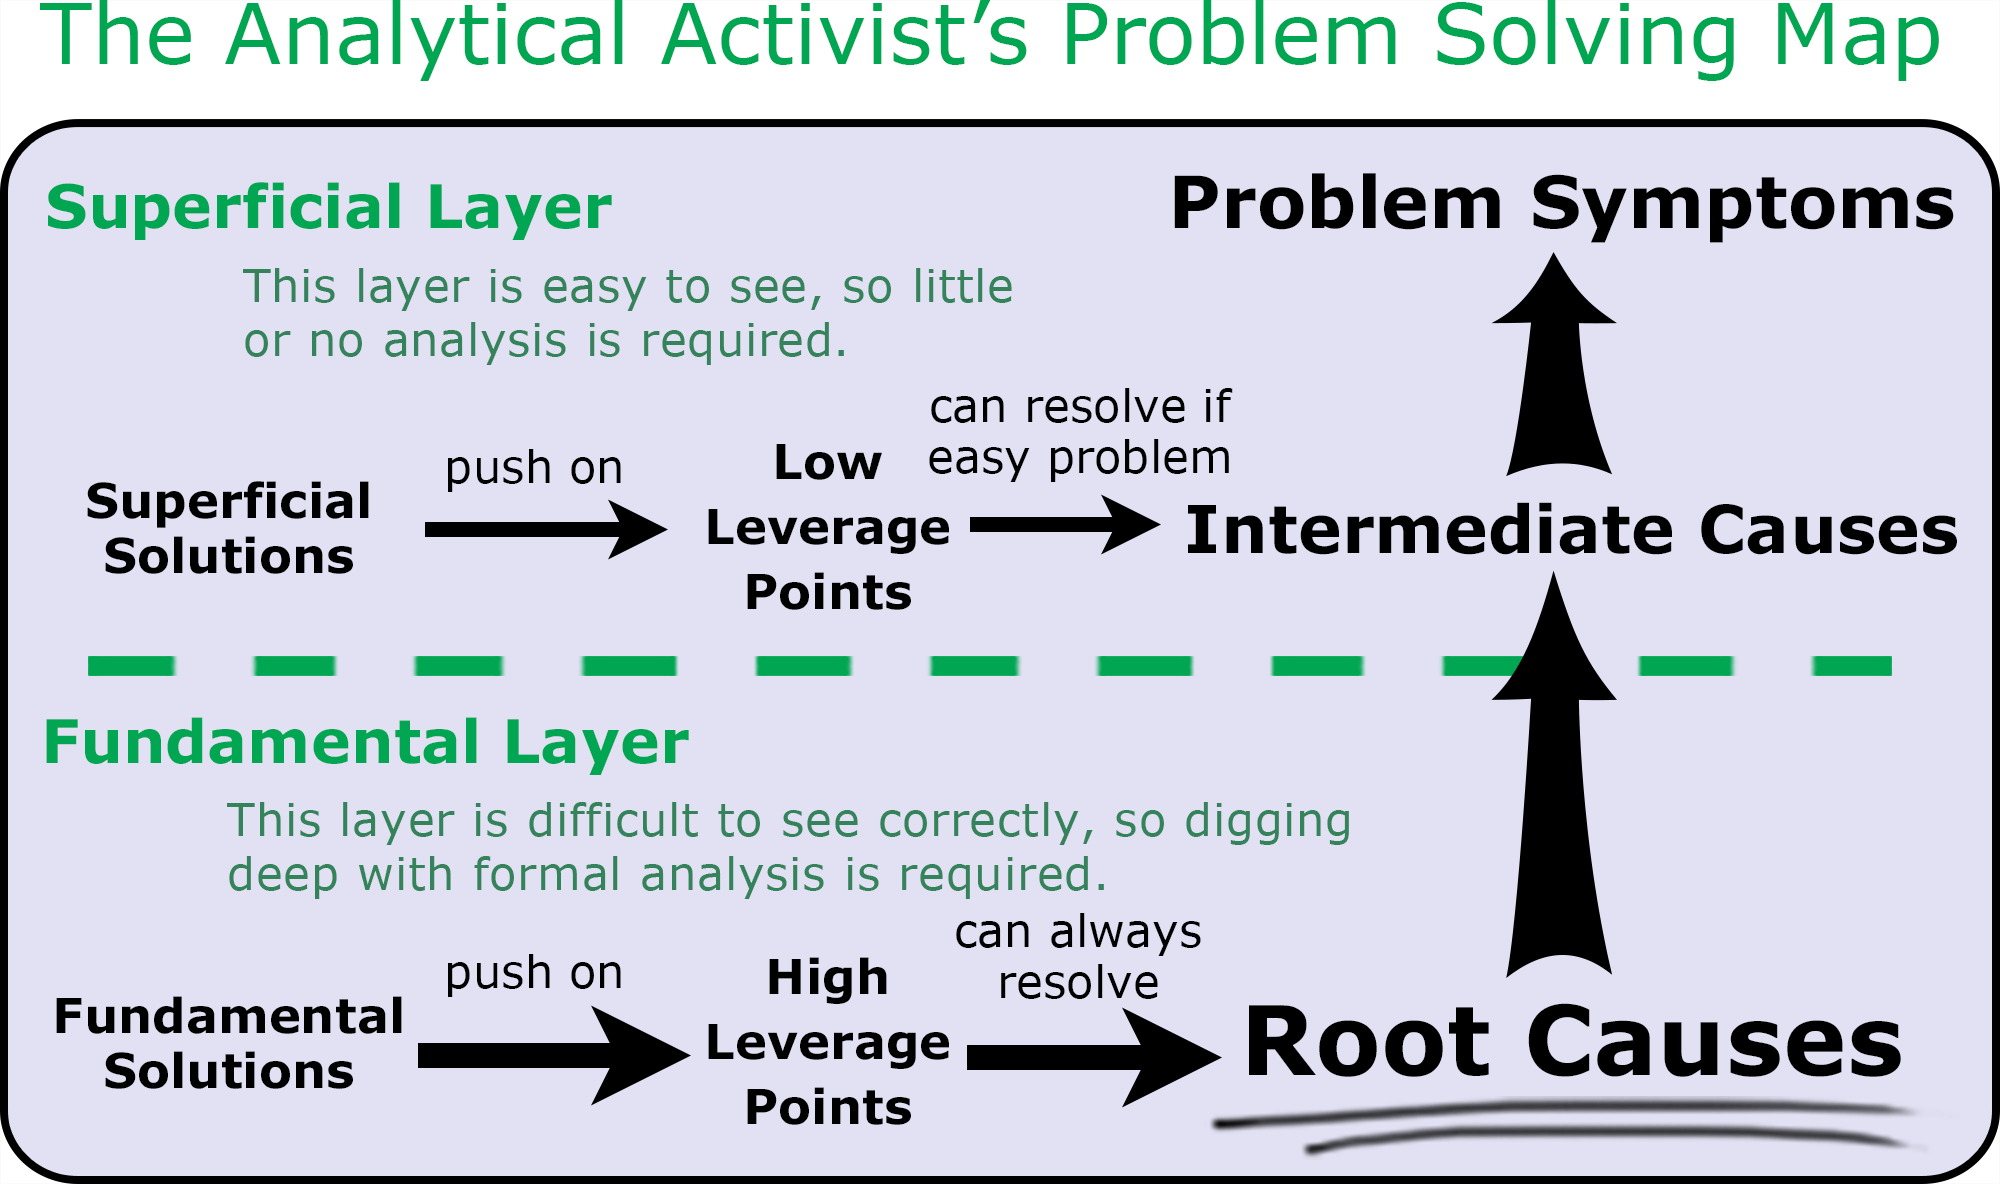 Root Cause - Tool/Concept/Definition